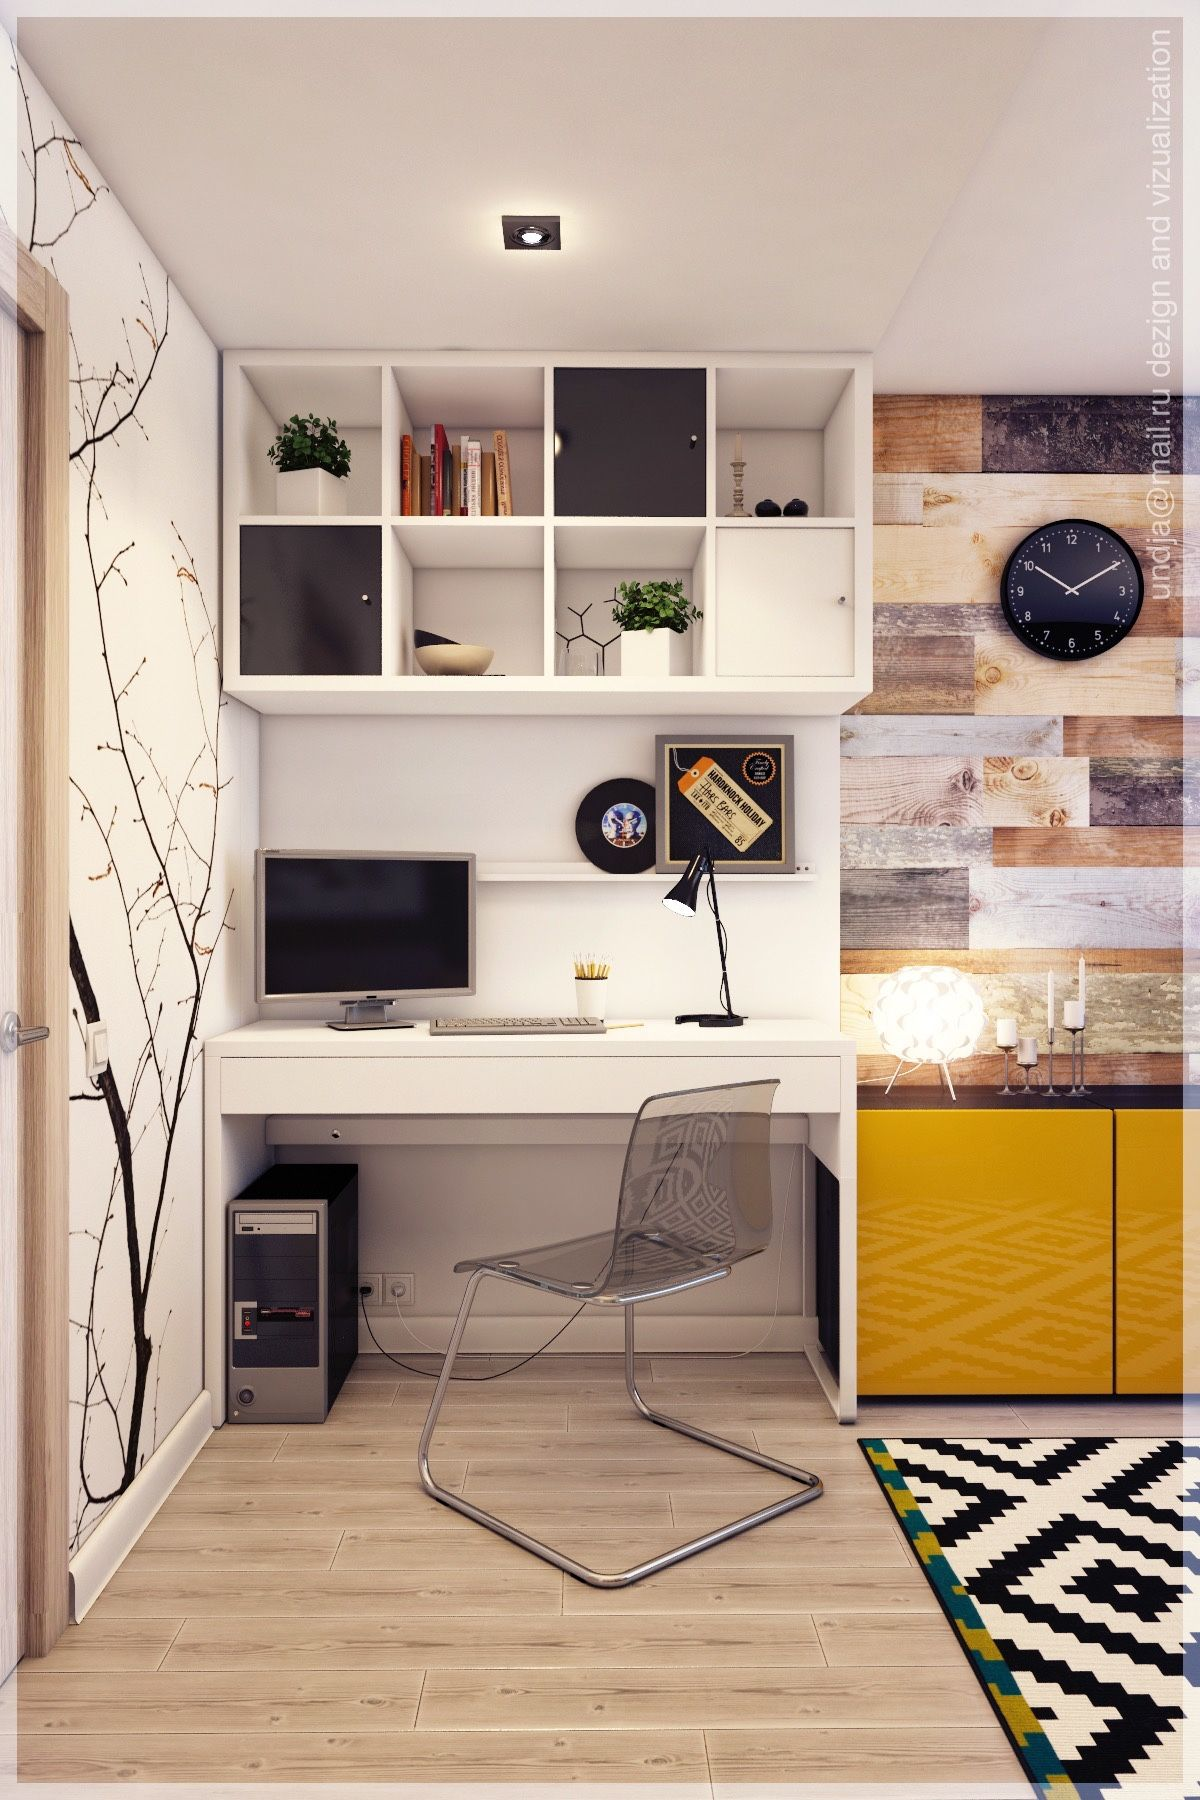 Home designing  via refresh your workspace with ideas from these also rh pinterest